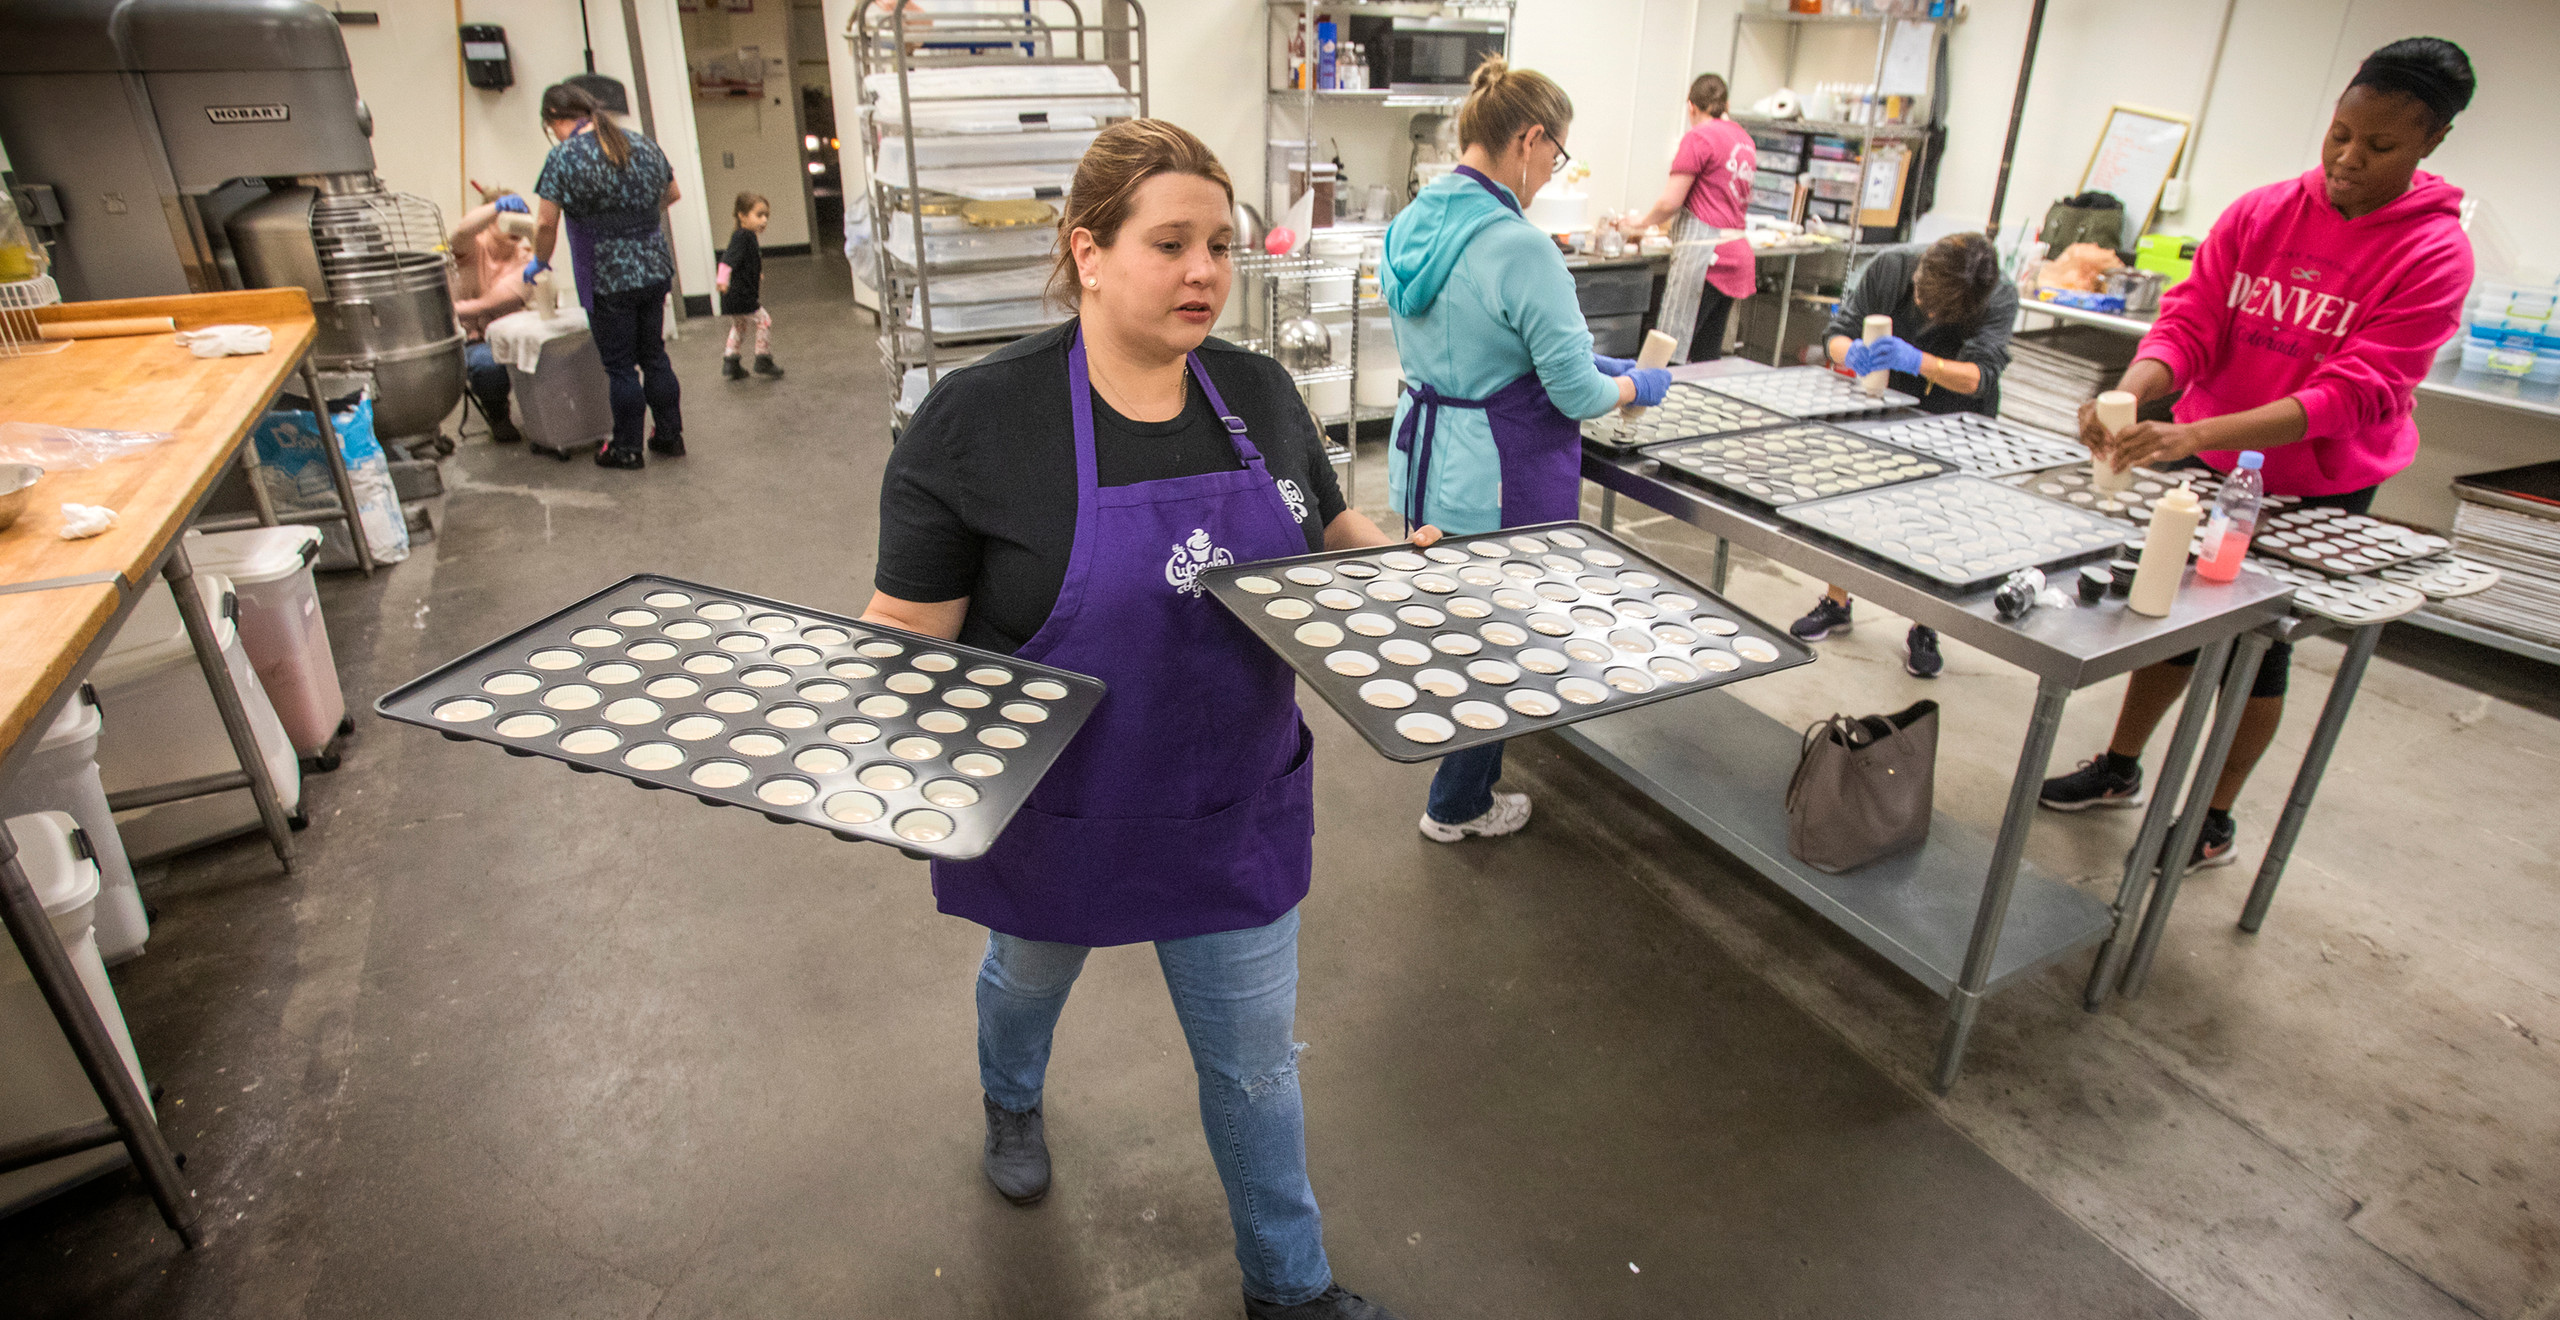 A volunteer wearing a purple apron with the Cupcake Girls' logo on it carries two mini cupcake pans through an industrial kitchen, while 5 other volunteers (and one cute toddler) are busy in the background.